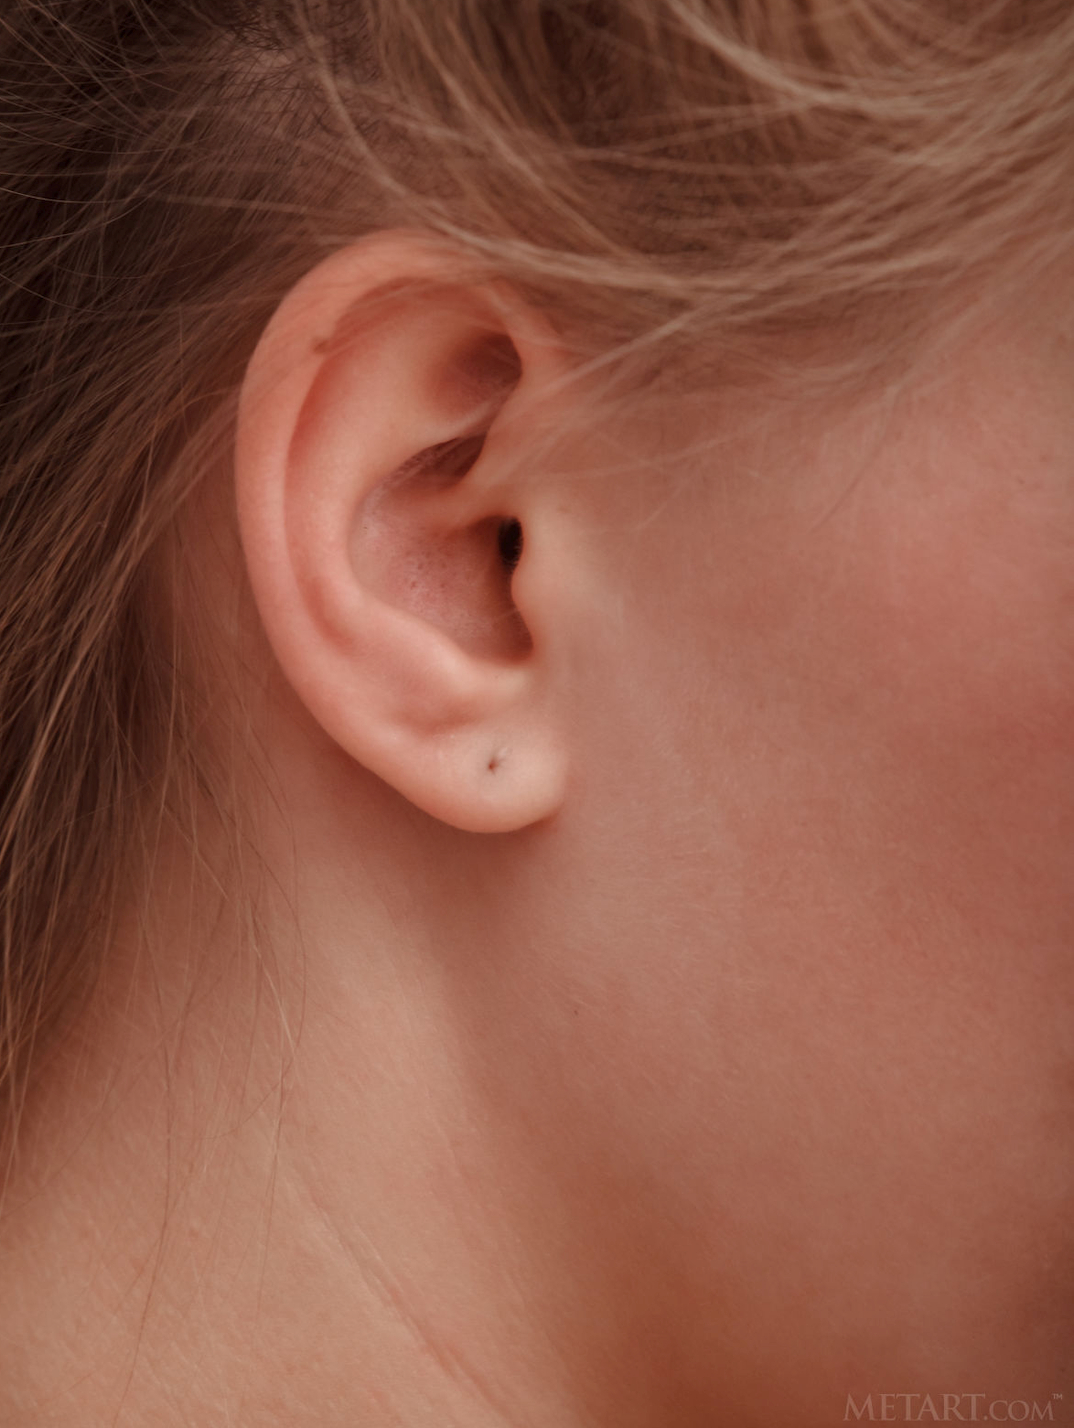 a girl named Adagio showing her ear